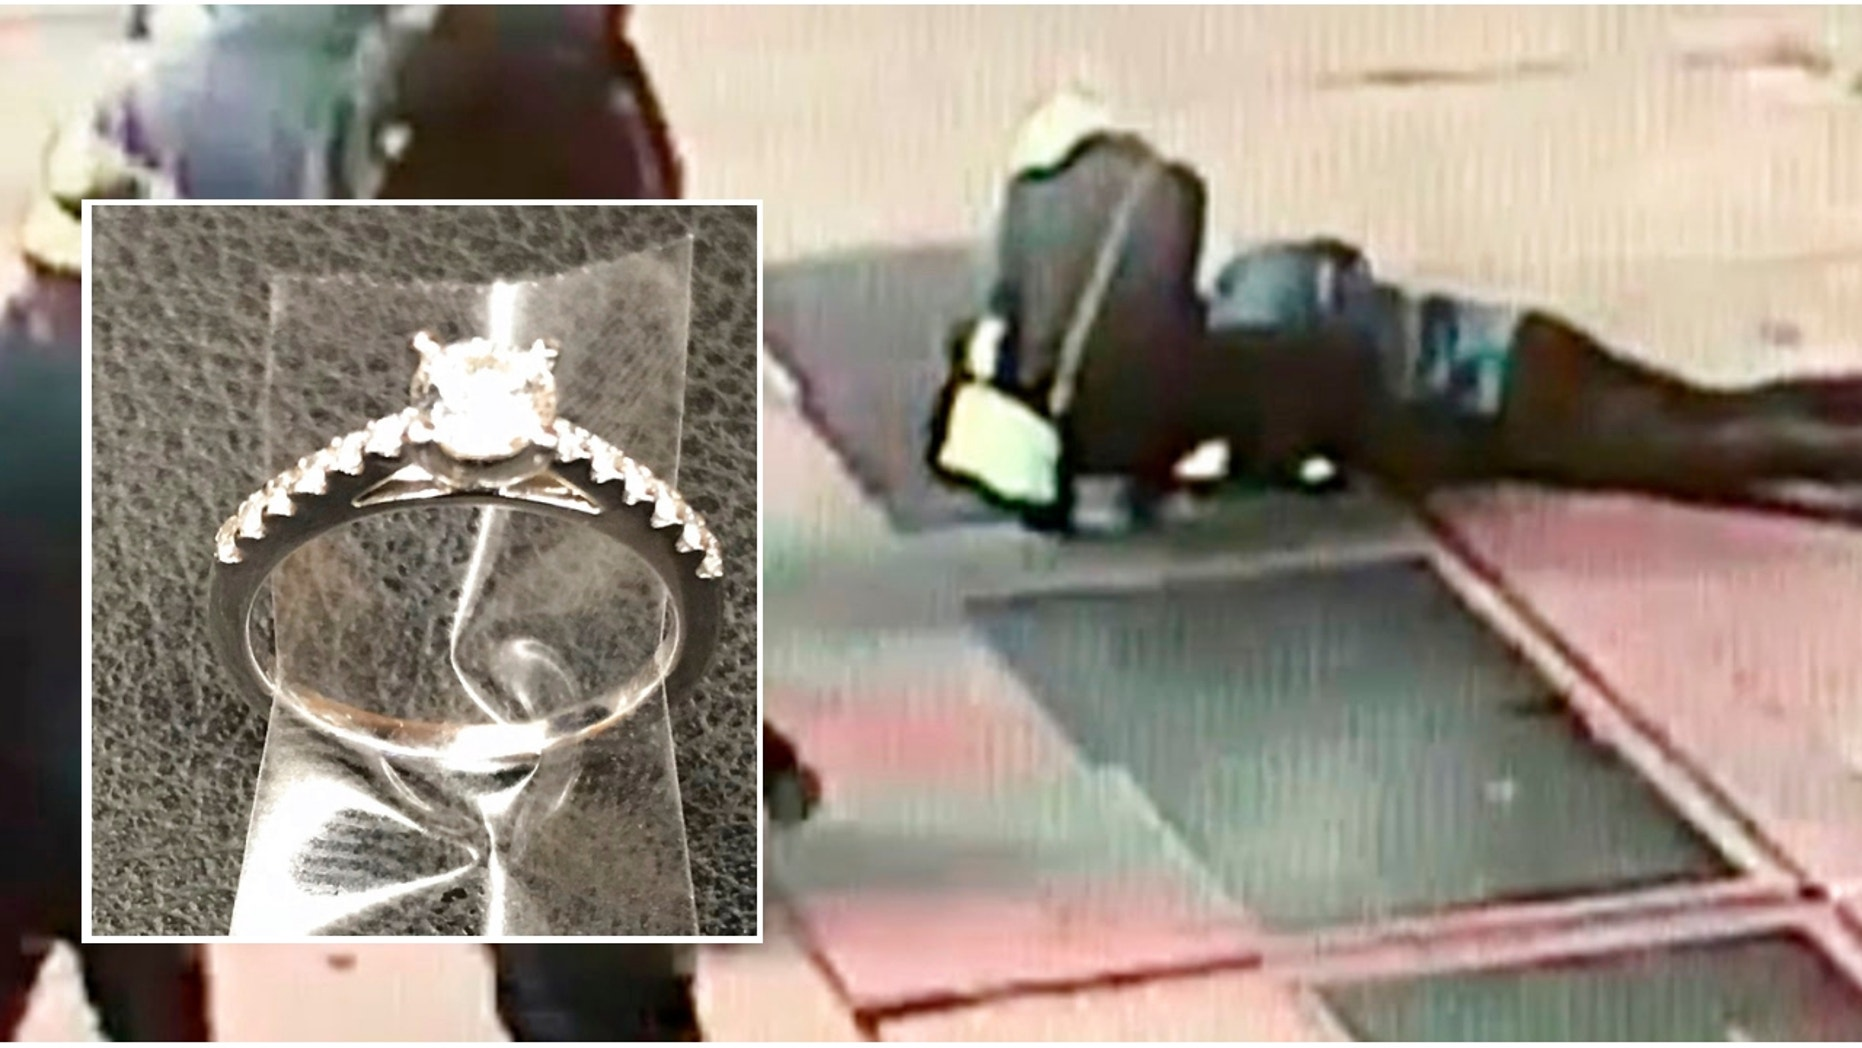 NYPD Are Searching For A Bloke Who Dropped Engagement Ring Down Drain